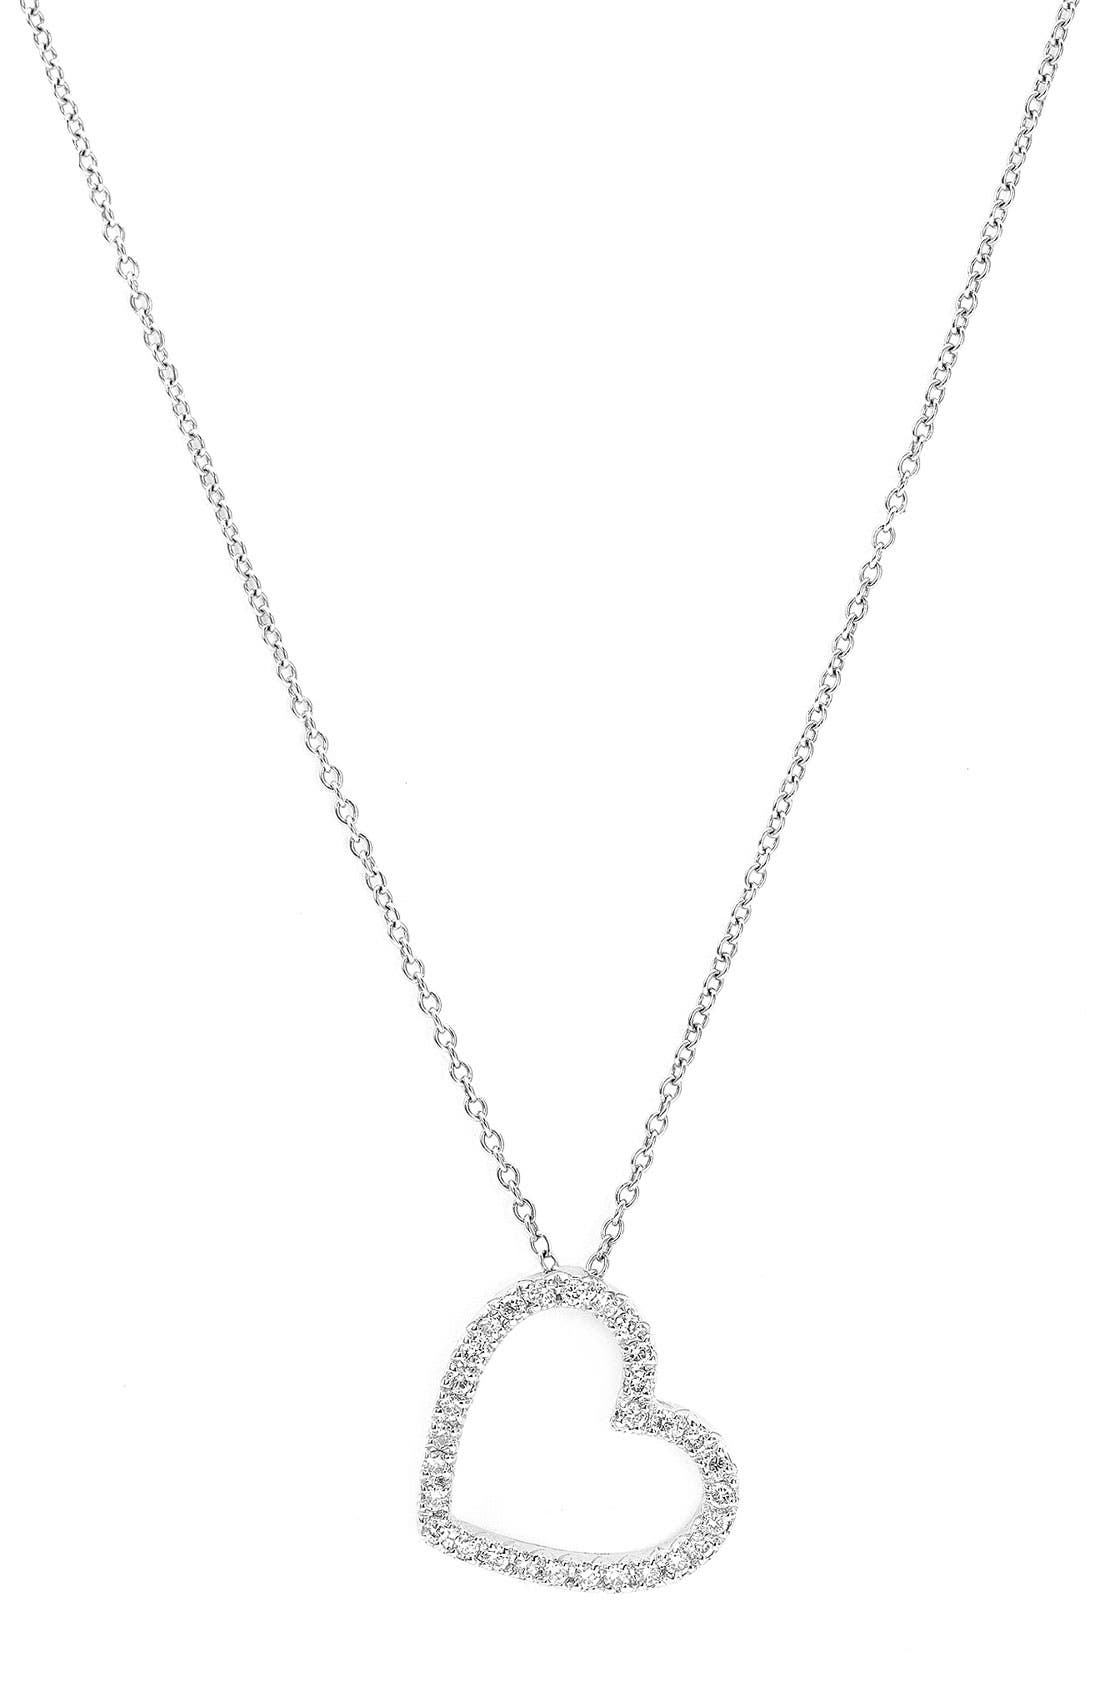 Alternate Image 1 Selected - Kwiat Small Silhouette Diamond Necklace